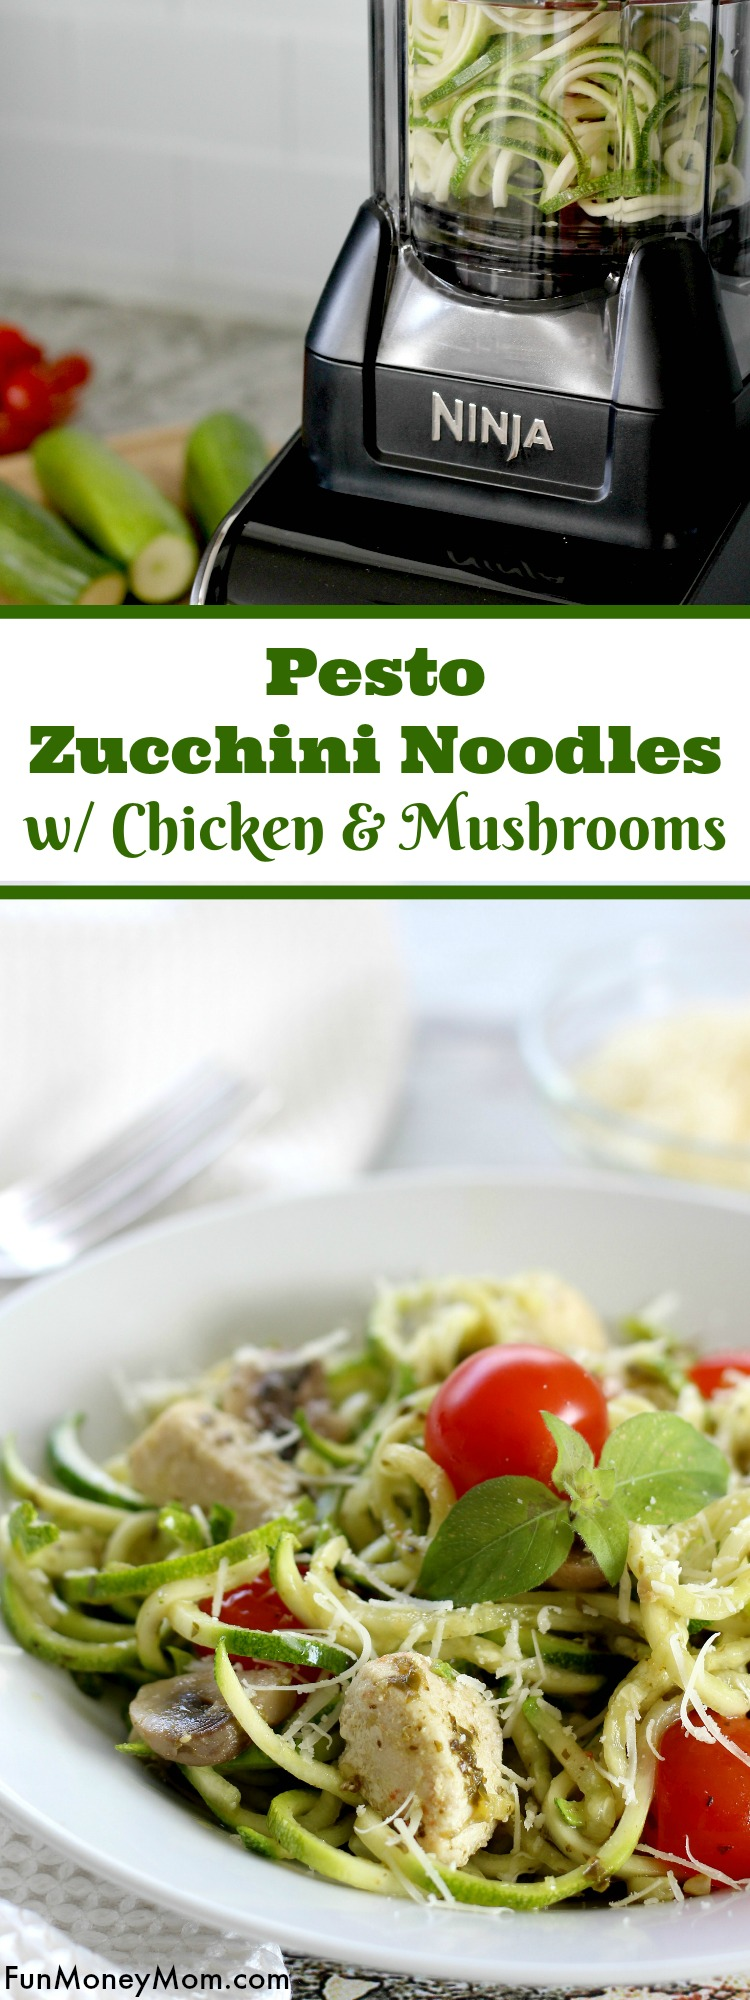 Looking for a healthy dinner recipe the entire family will love? The kids will love eating their veggies when you serve these delicious Pesto Zucchini Noodles With Chicken And Mushrooms.